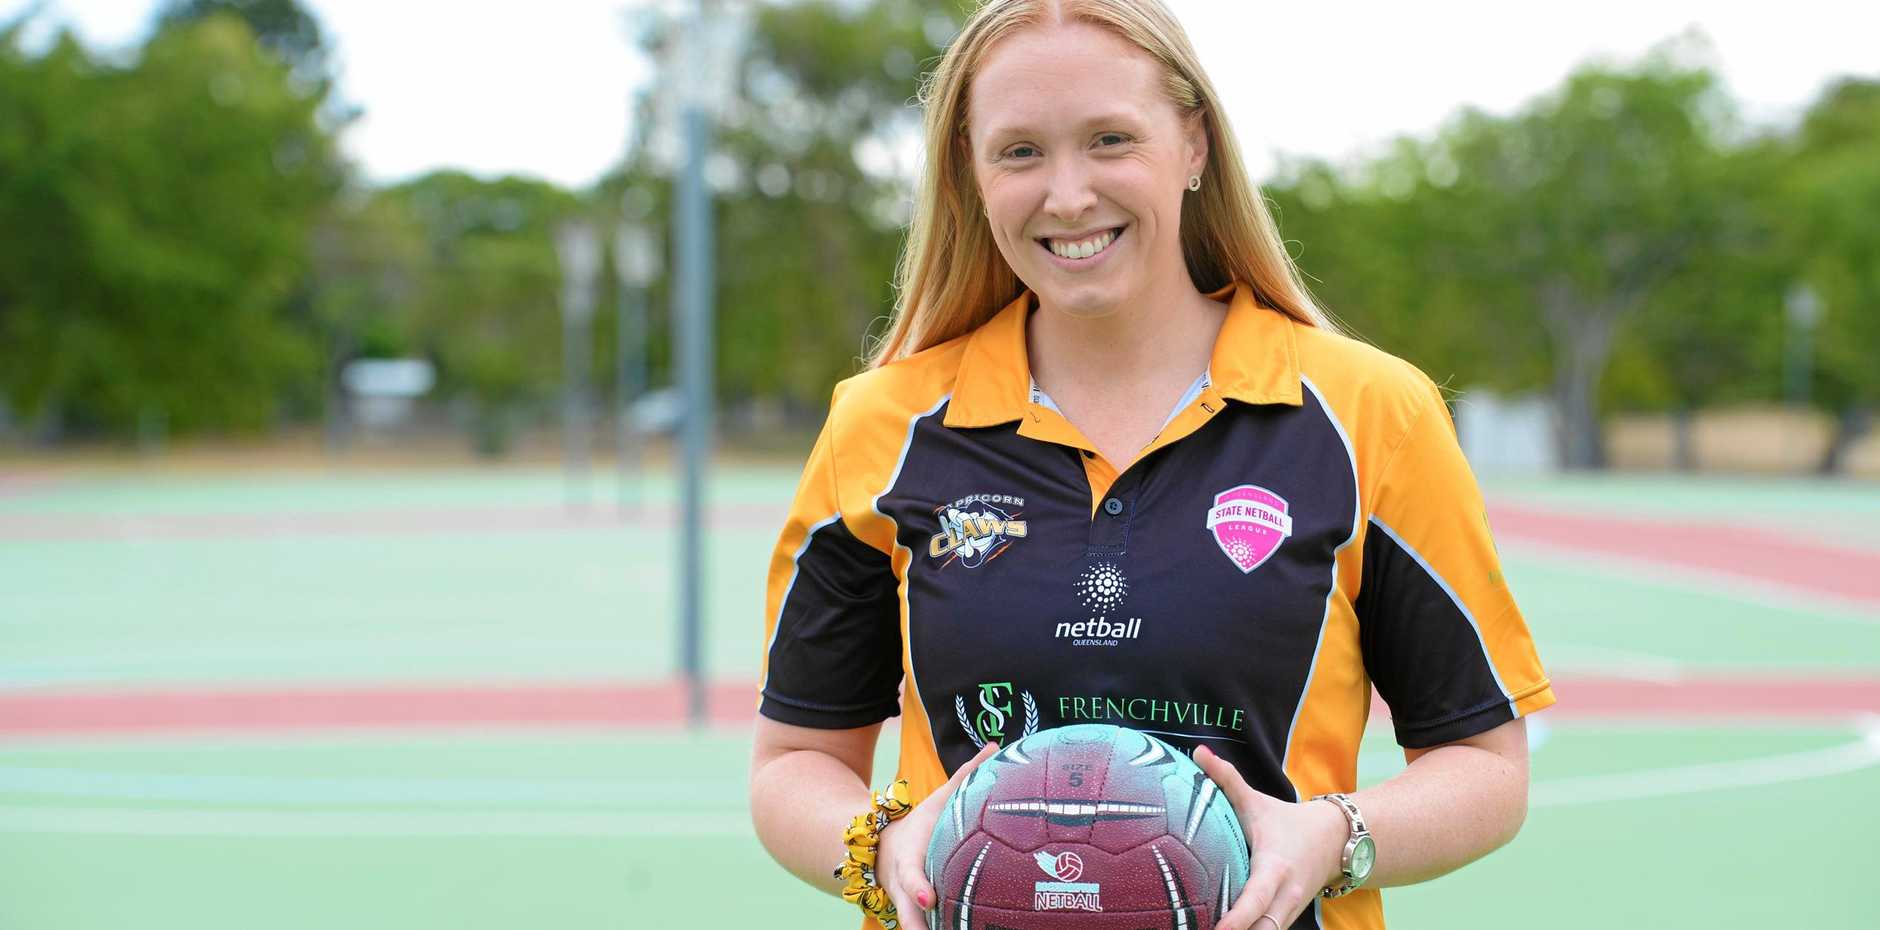 CLAWING AHEAD: Claws player Bridget Fletcher is ready to prove her worth in the Suncorp Super Netball Ruby Series.